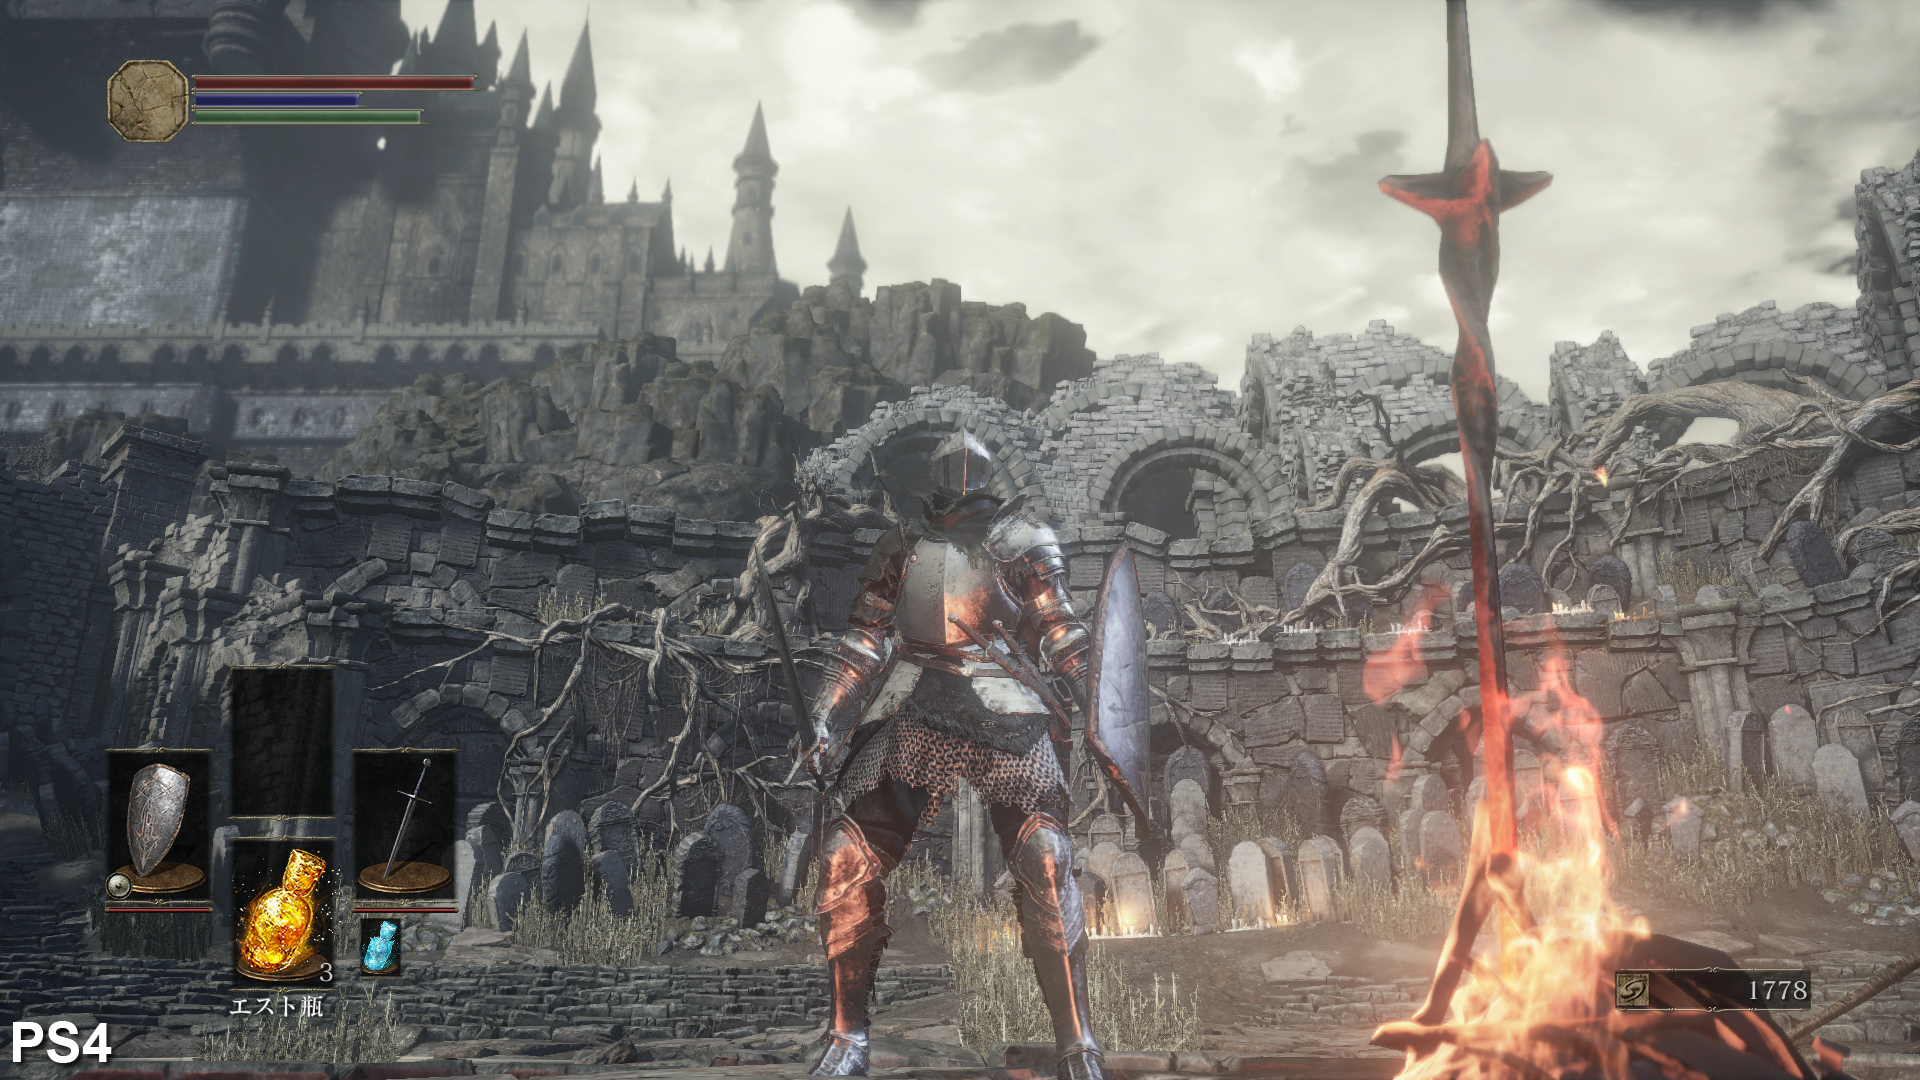 Face Off Dark Souls 3 Game Ps4 Soul Iii Of The Year Edition Background Level Detail Scaling Is Identical Between Two Consoles You Get Slight Pop In On Both But It Occurs At Same Range